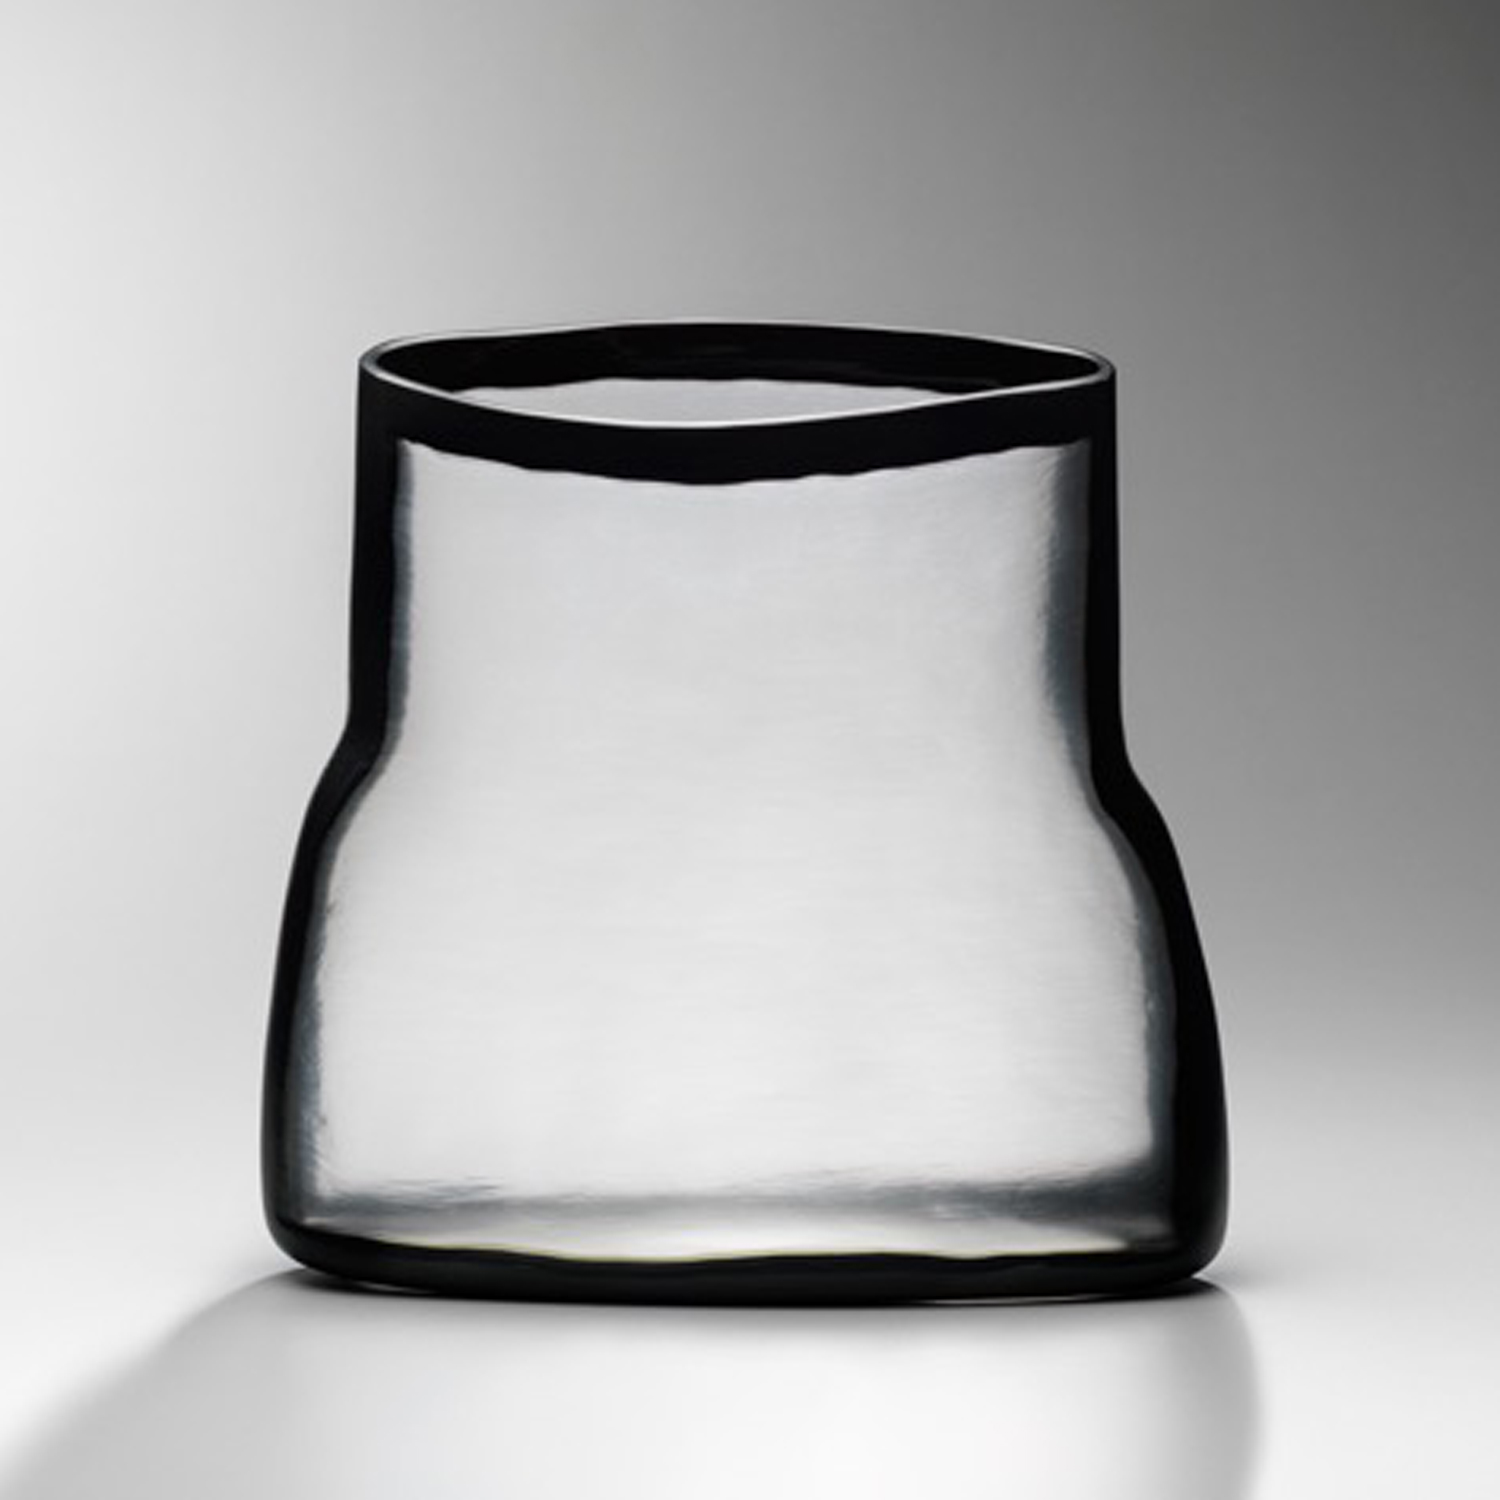 Tim Edwards transitioned from ceramics to glass & his glass vessels ...